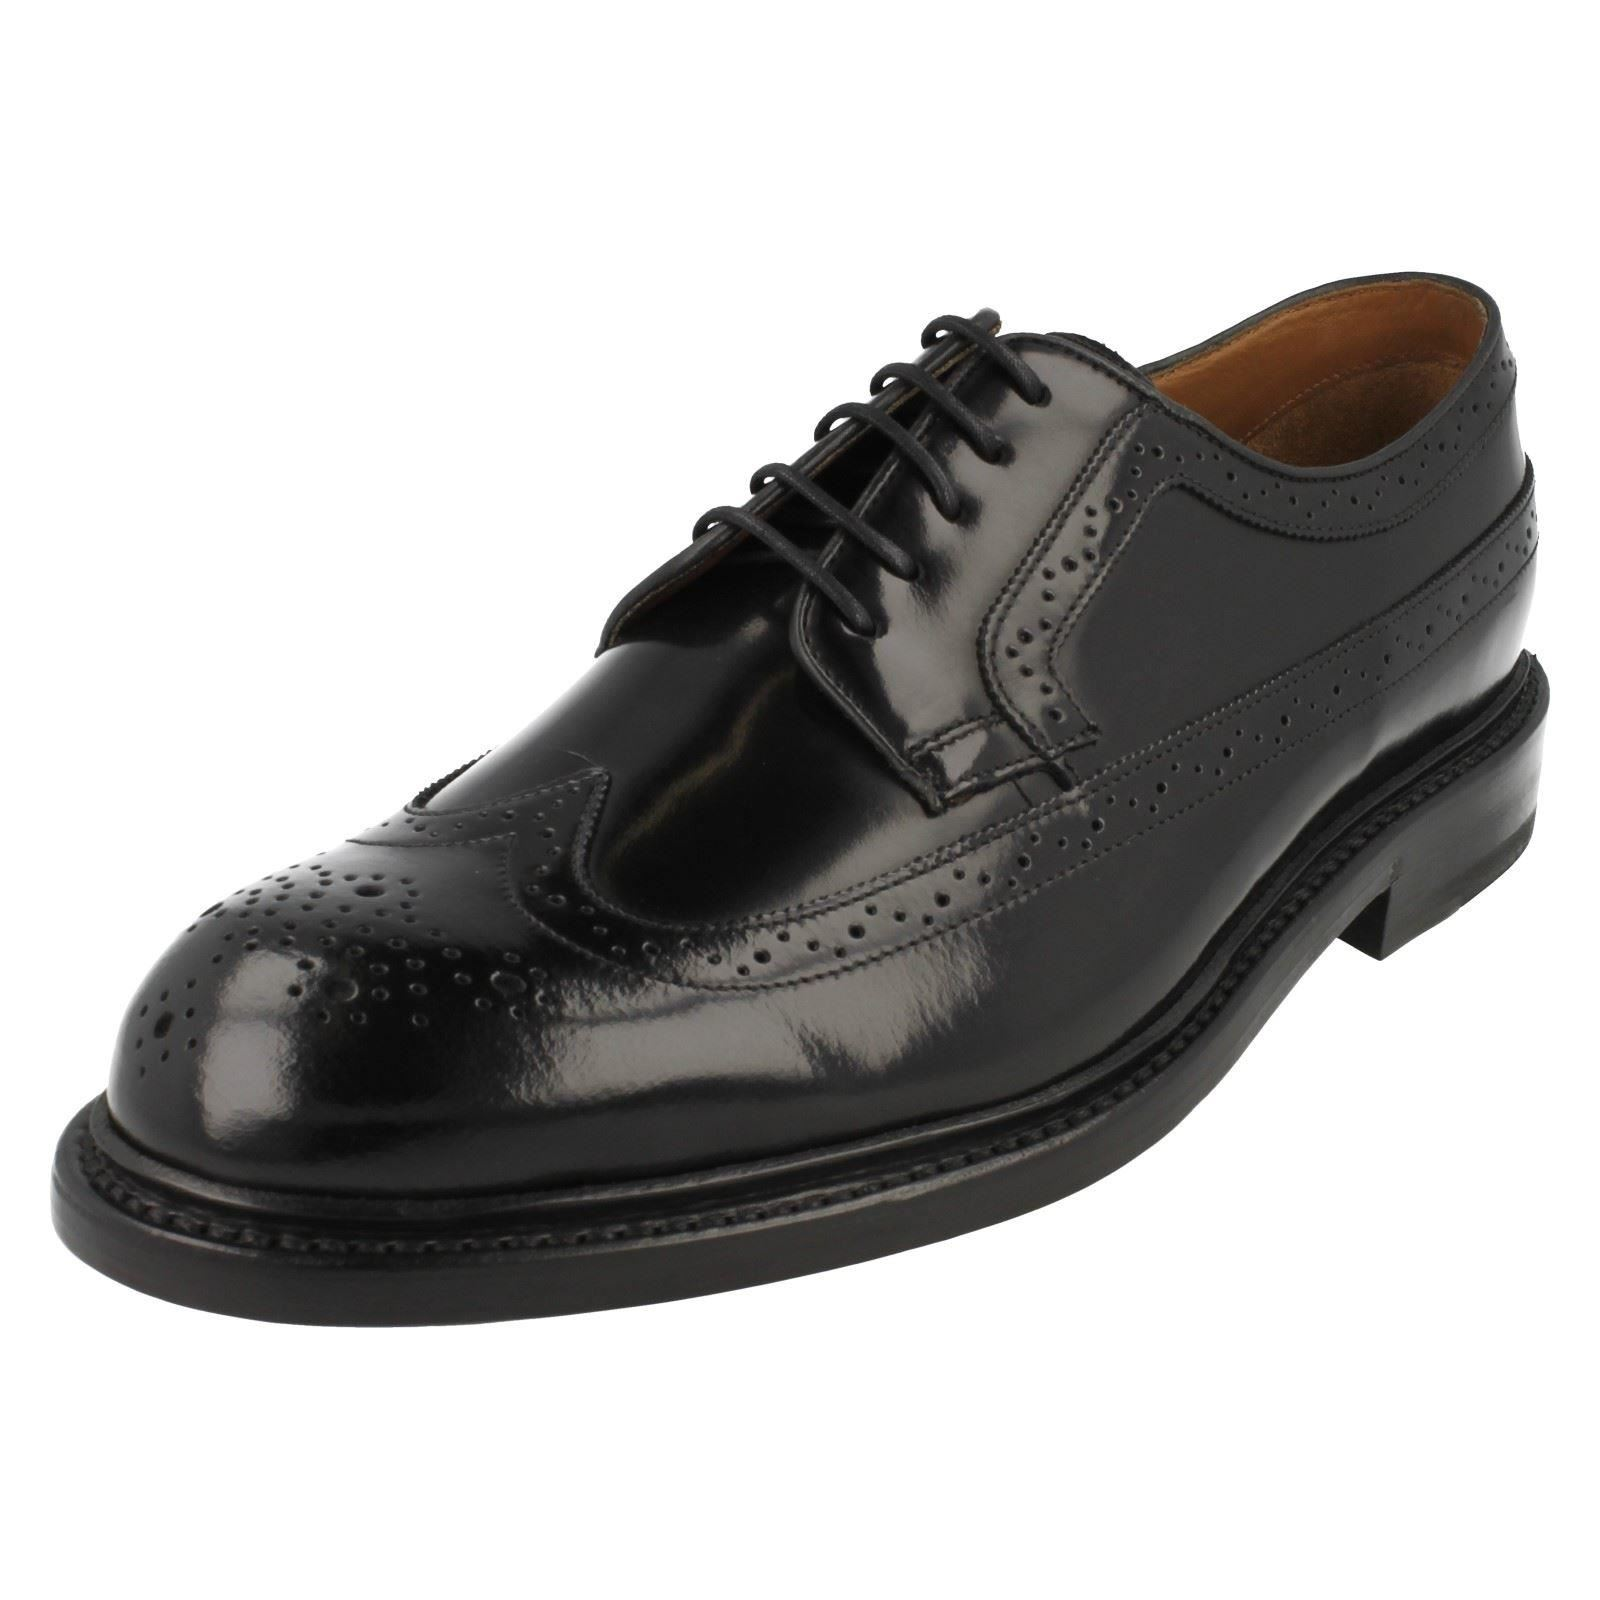 Mens The Clarks Formal Shoes The Mens Style - Edward Limit d8999e